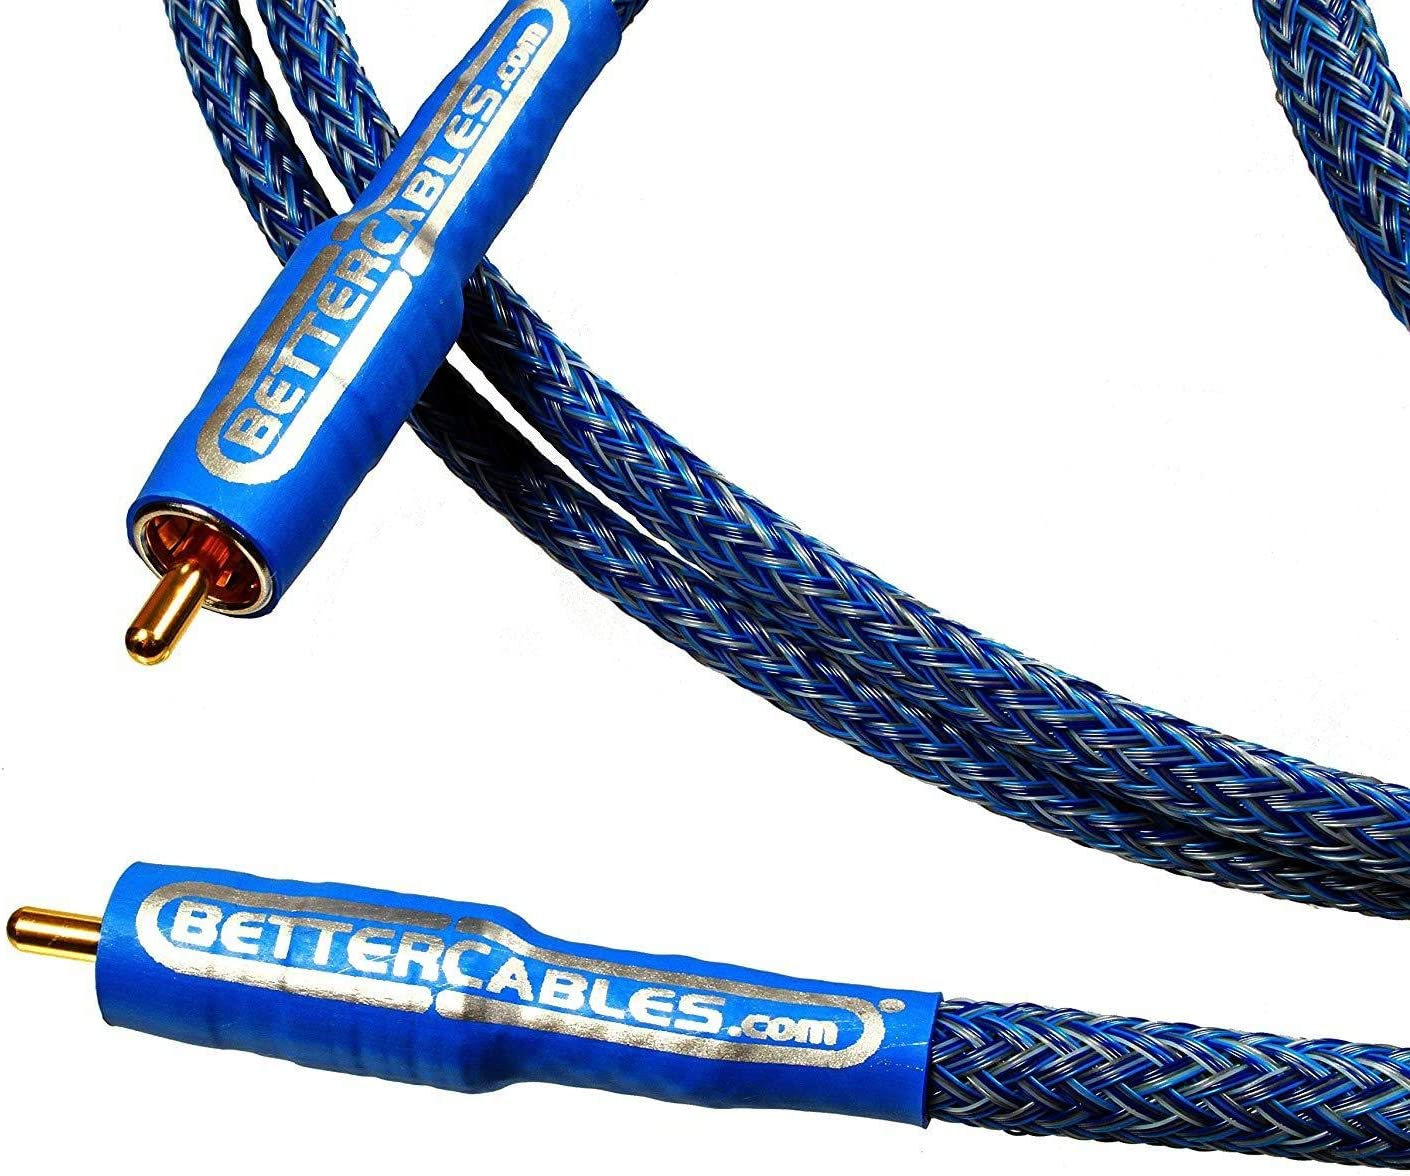 Better Cables Blue Truth Digital Coax Cable - High-End, High-Performance, Silver/Copper Hybrid, Low-Capacitance, Premium Coaxial Cable (RCA Cable) - 3 Feet